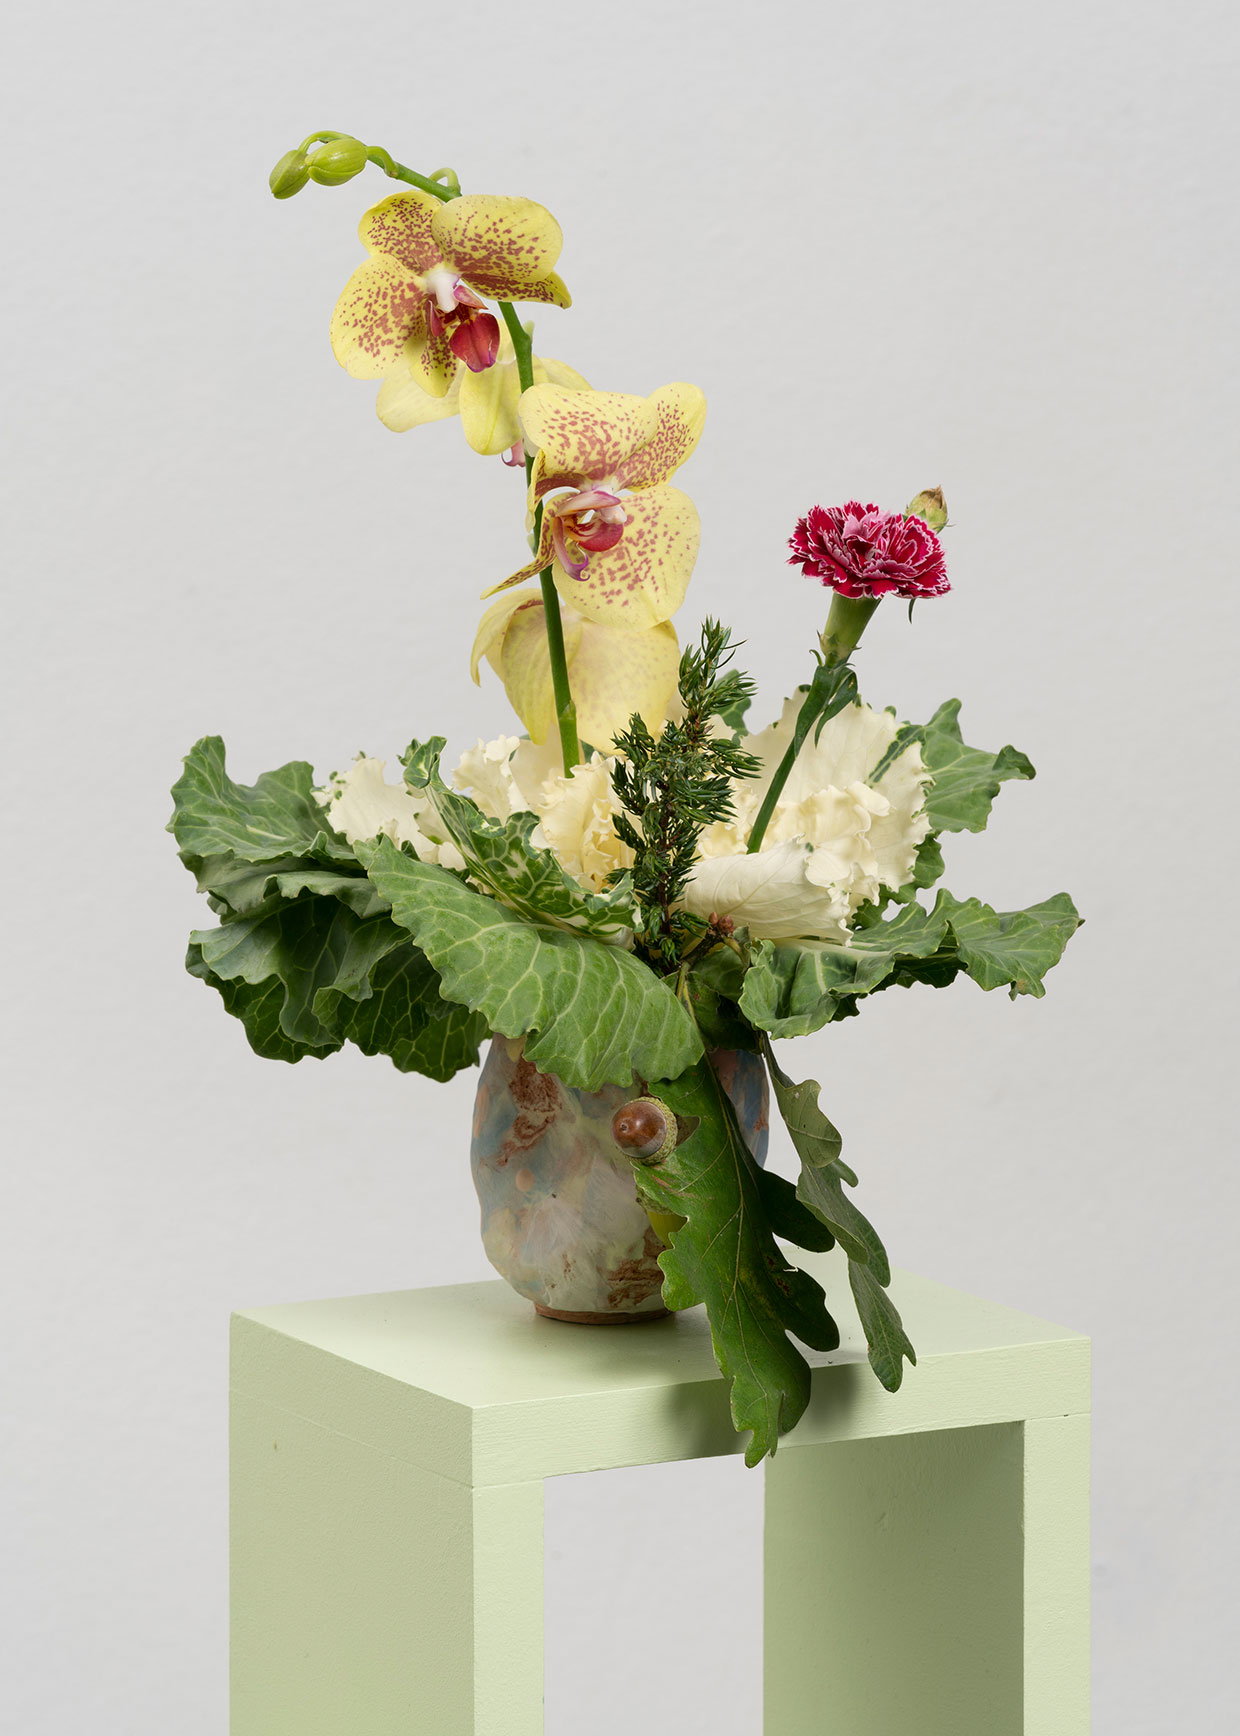 Emilia Bergmark, Abstract Container (The Cost of Living), 2020. Courtesy the artist. Photo: David Stjernholm